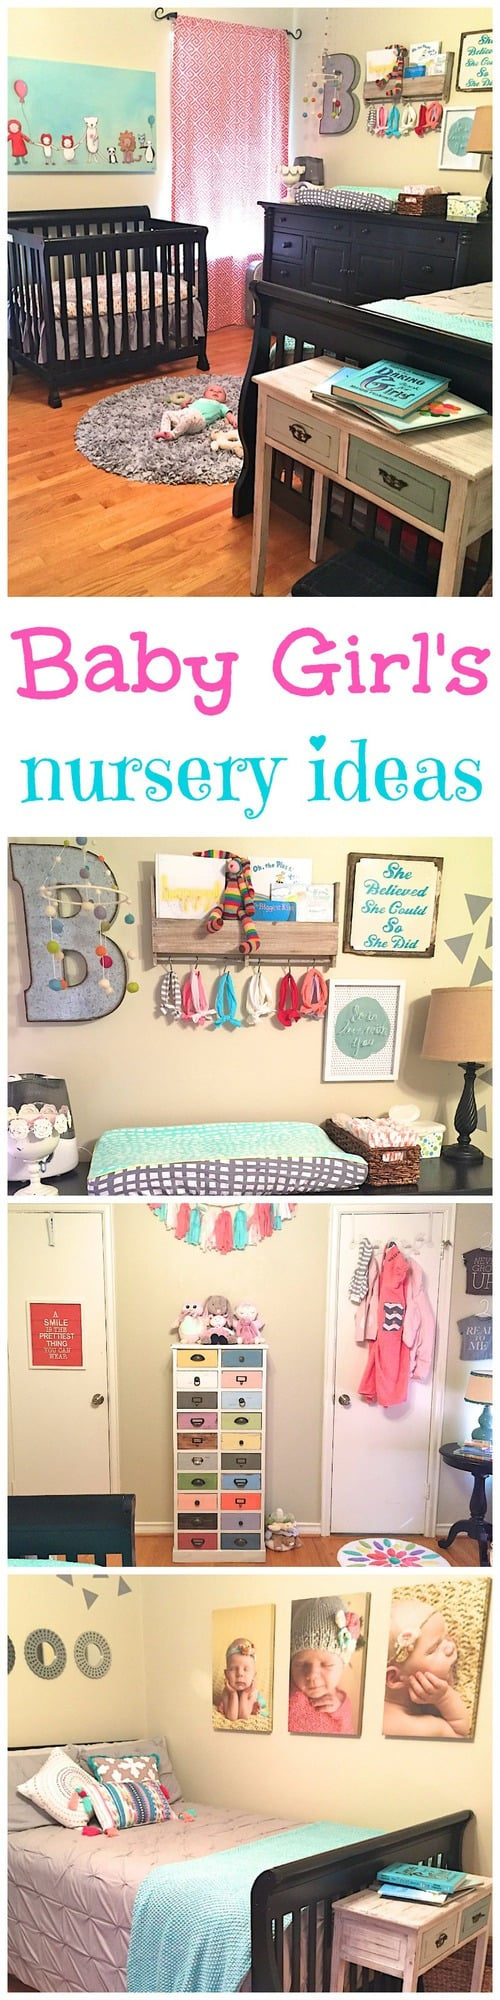 Baby Girl's Nursery Ideas